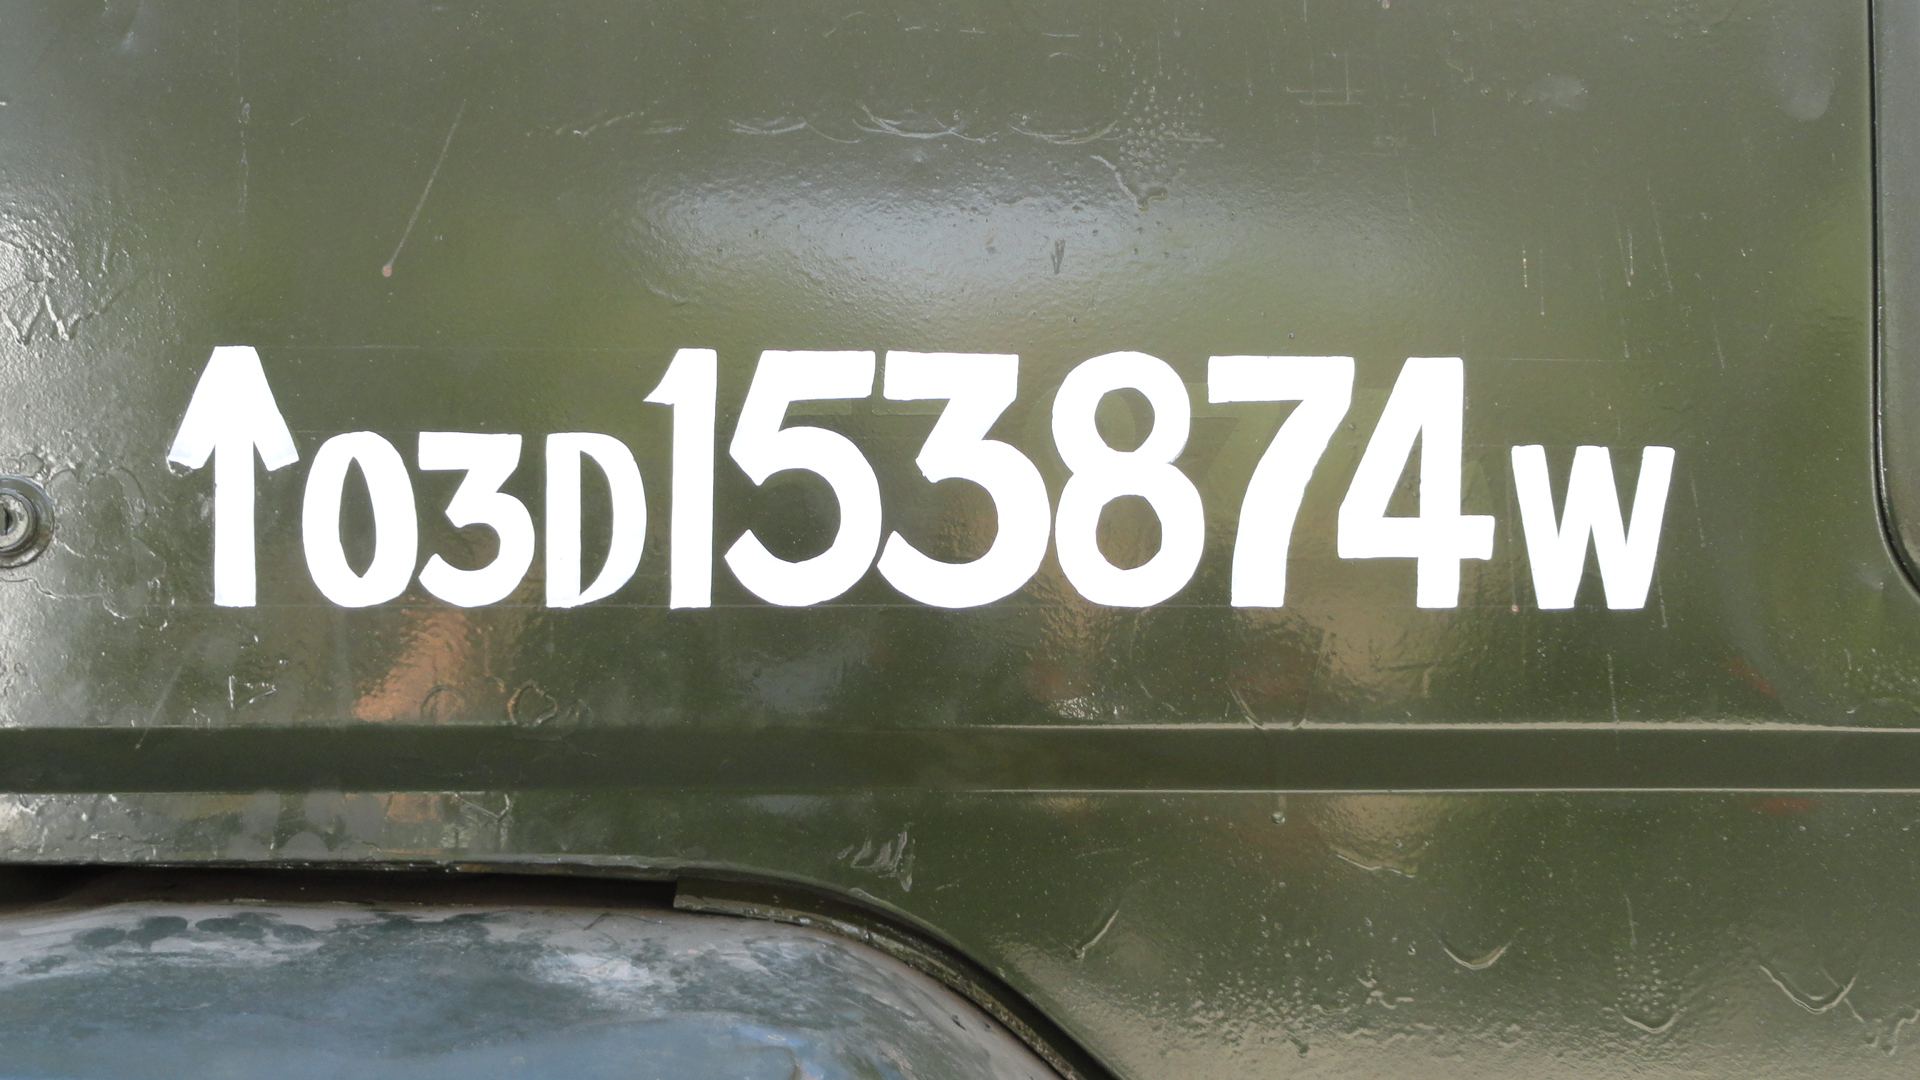 military-cars-number-plates-marathipizza01